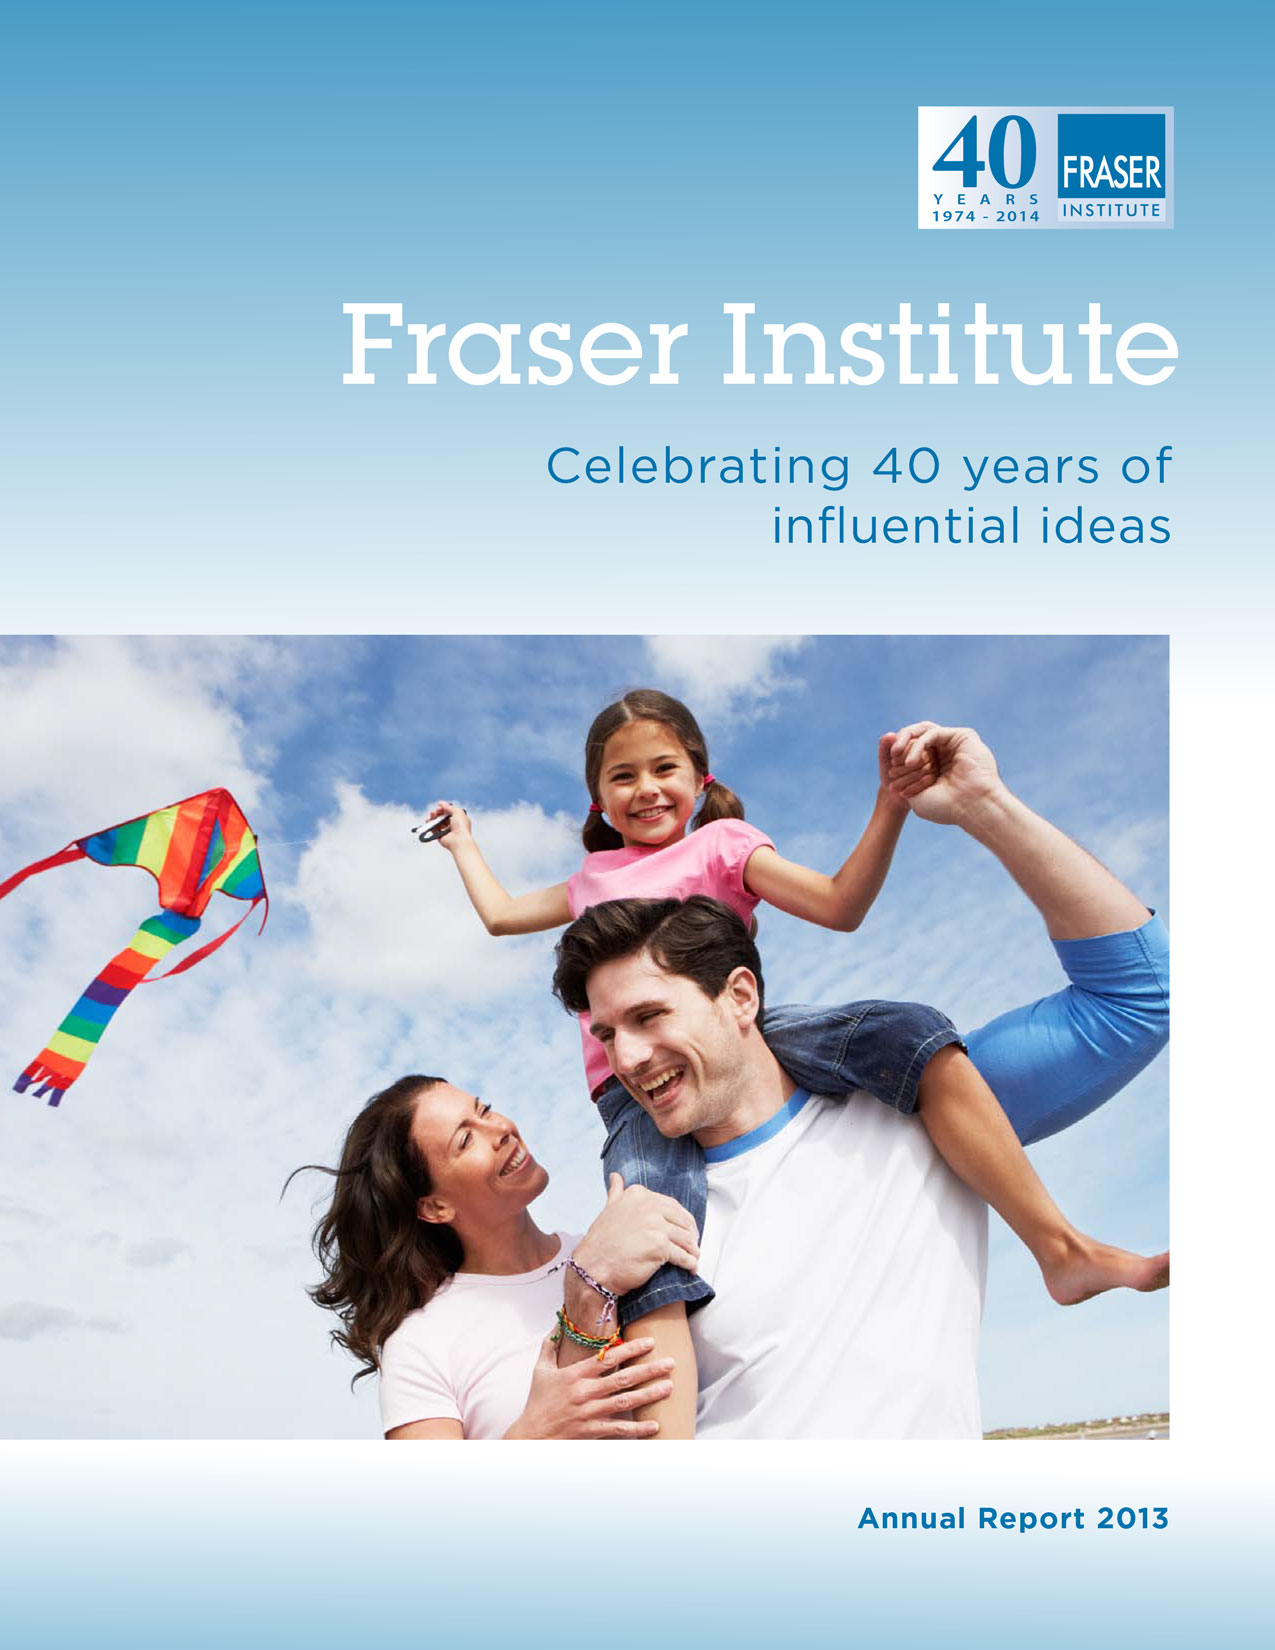 fraser institute annual student essay contest